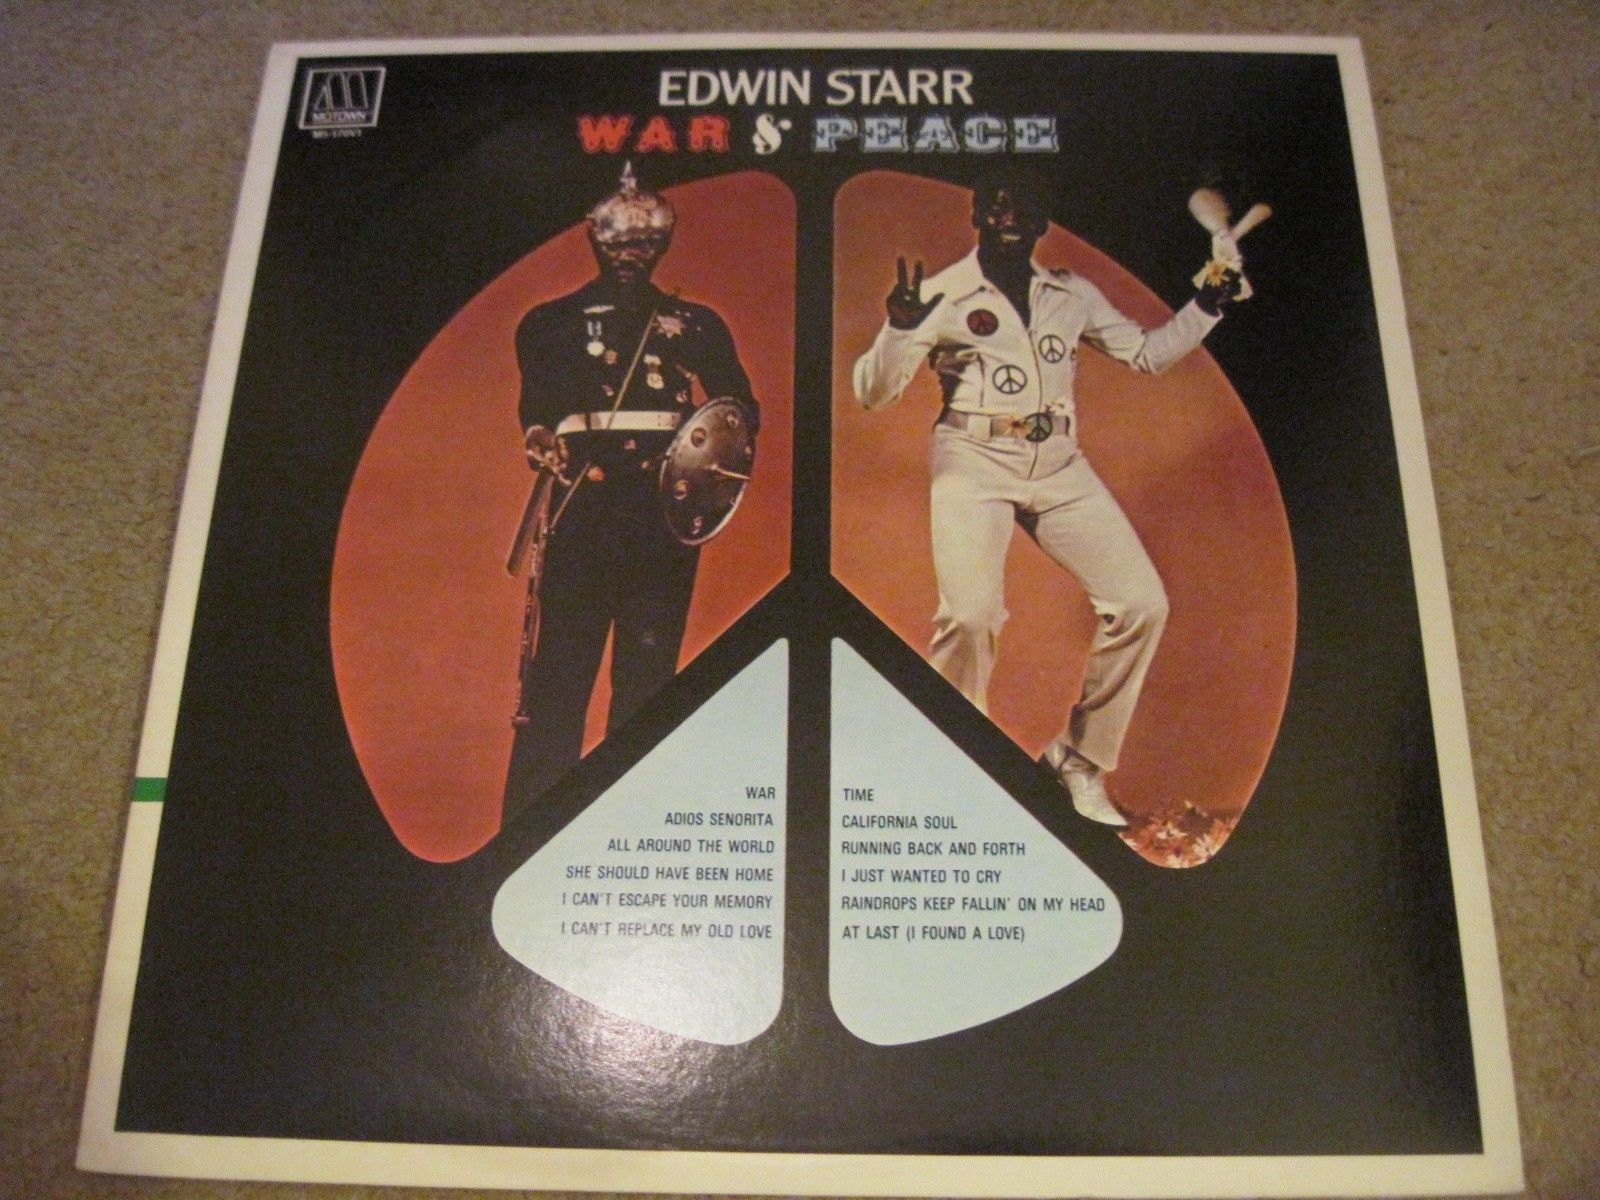 EDWIN STARR War And Peace  1970  MOTOWN     NEAR MINT